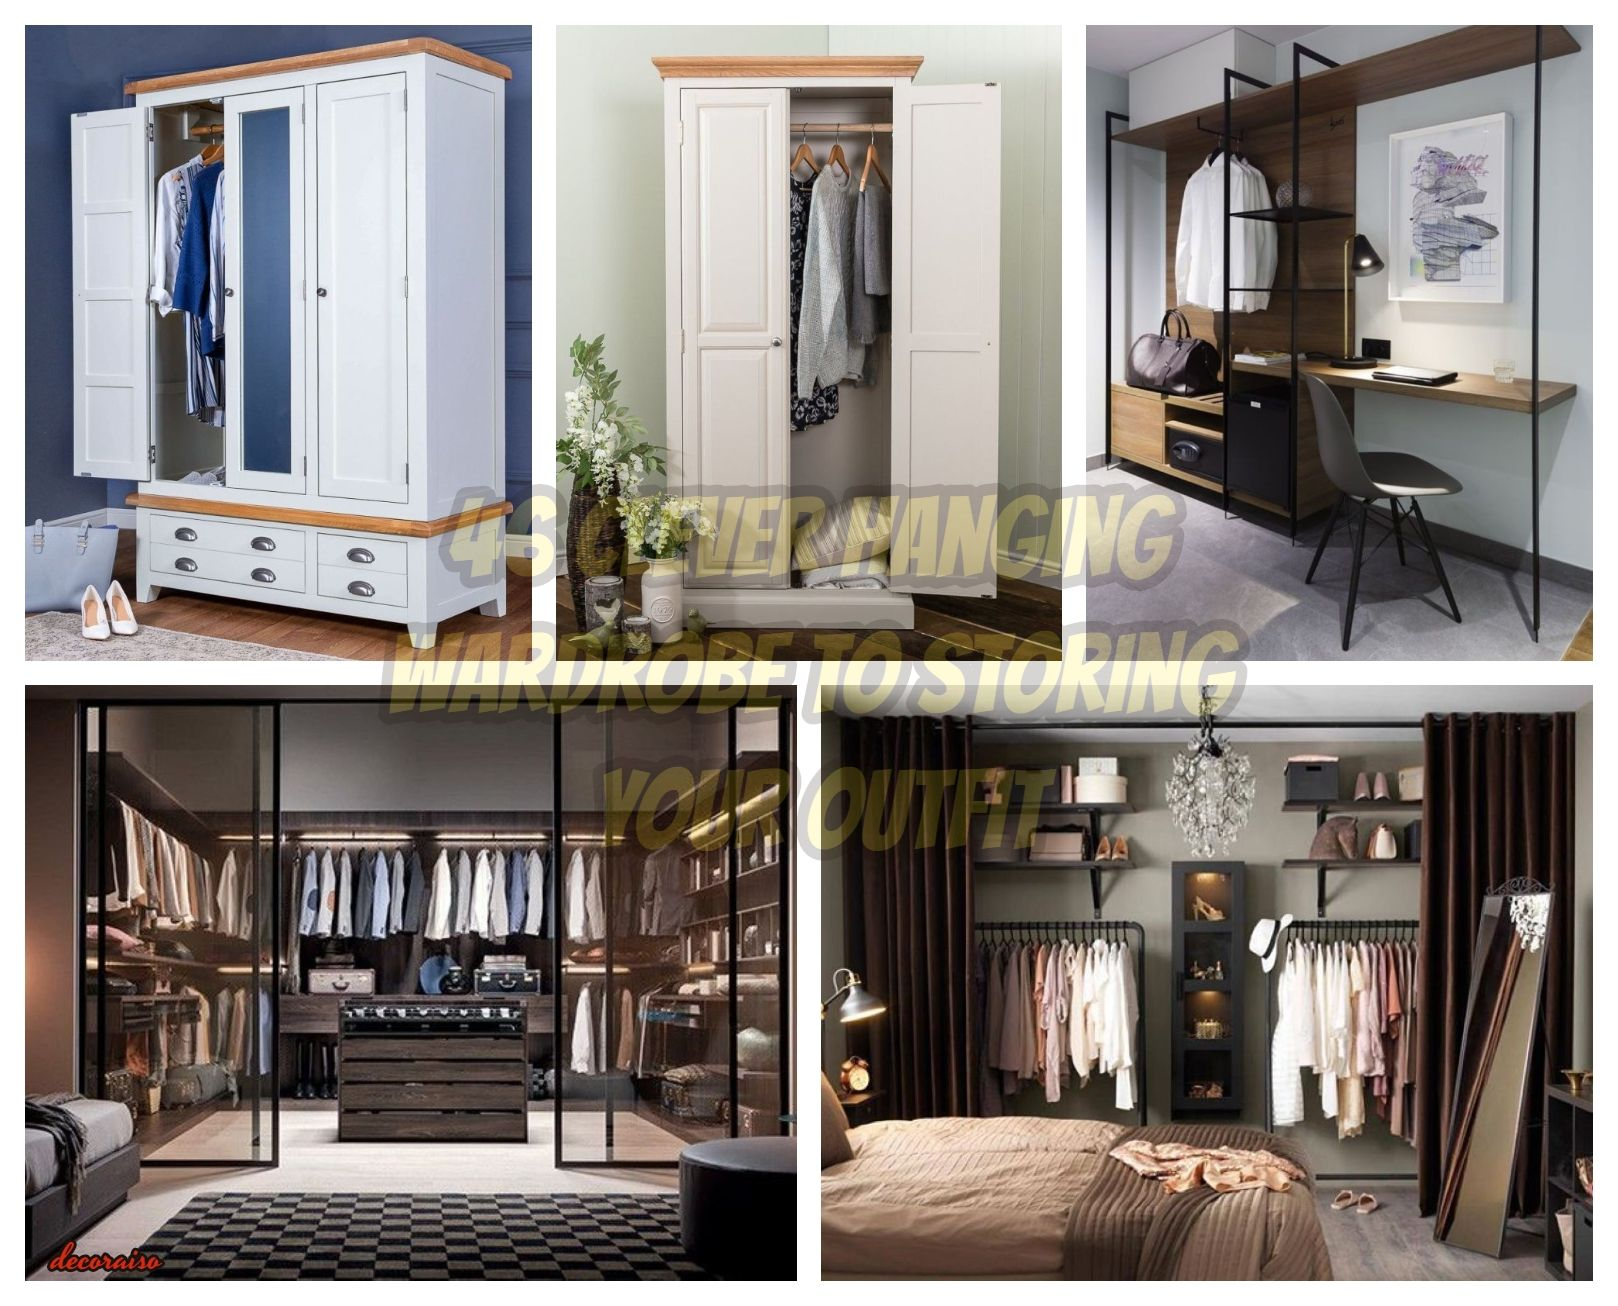 clever hanging wardrobe to storing your outfit furniture ideas